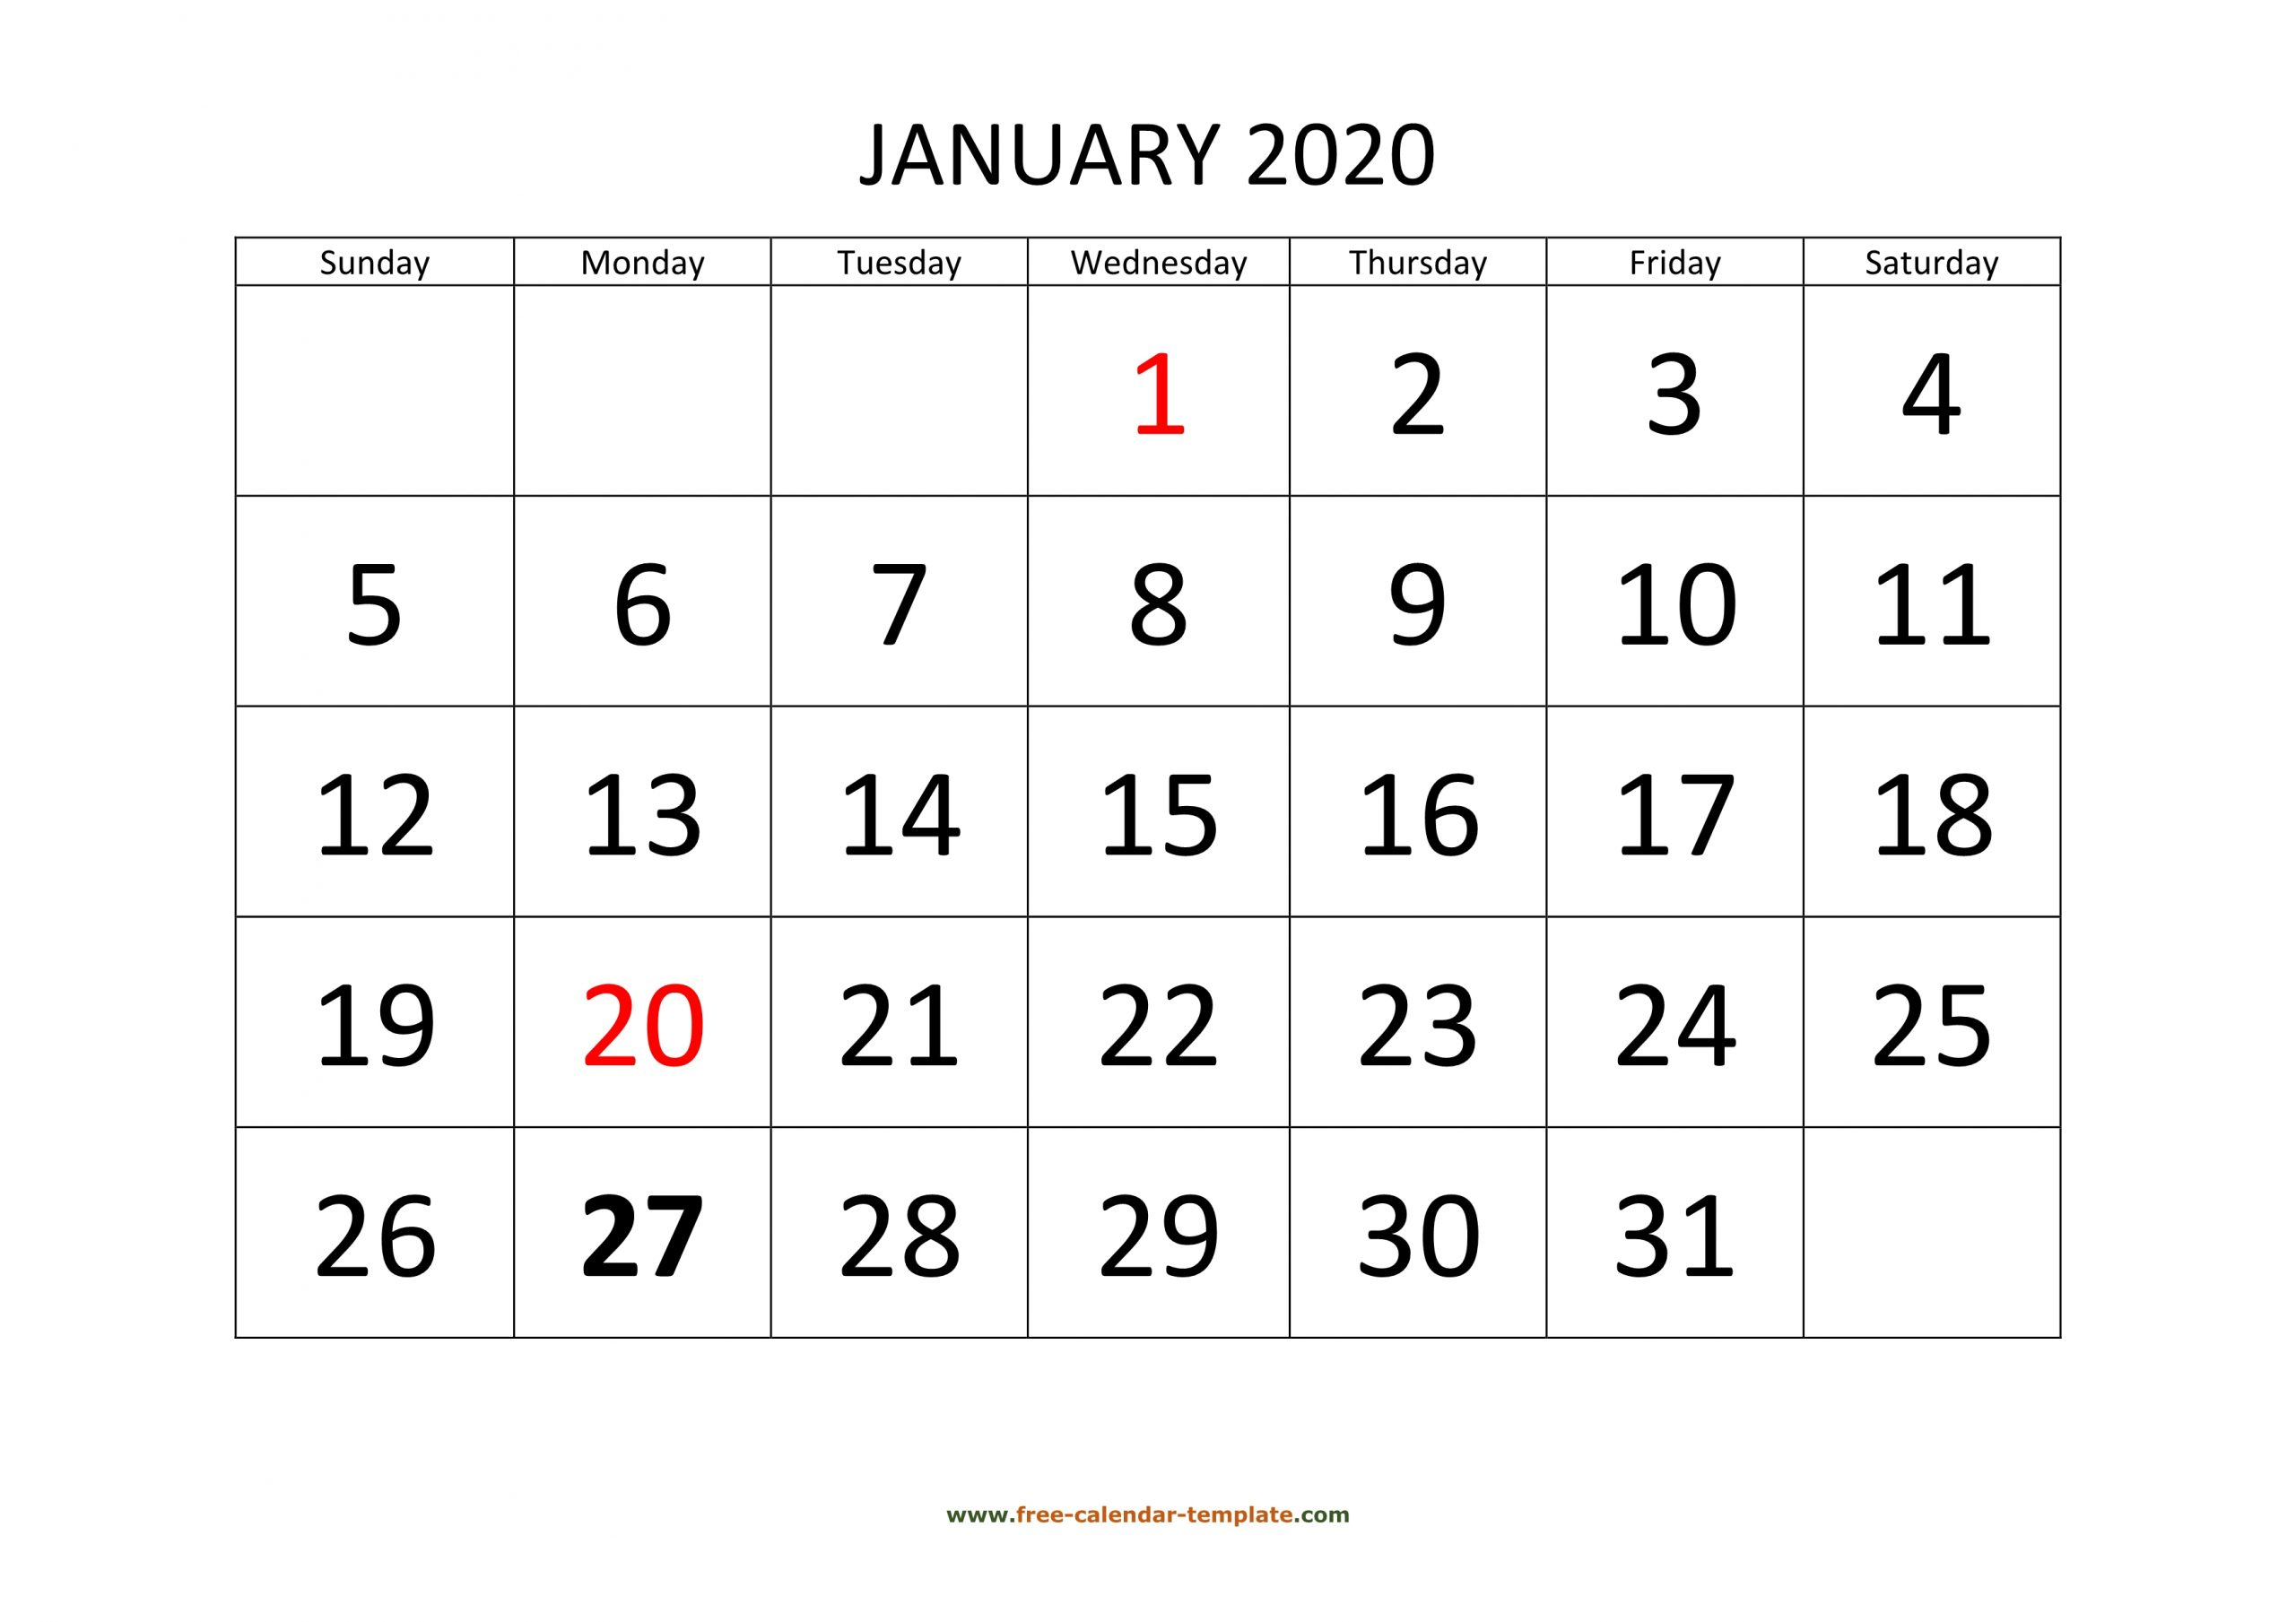 January 2020 Calendar Designed With Large Font (Horizontal